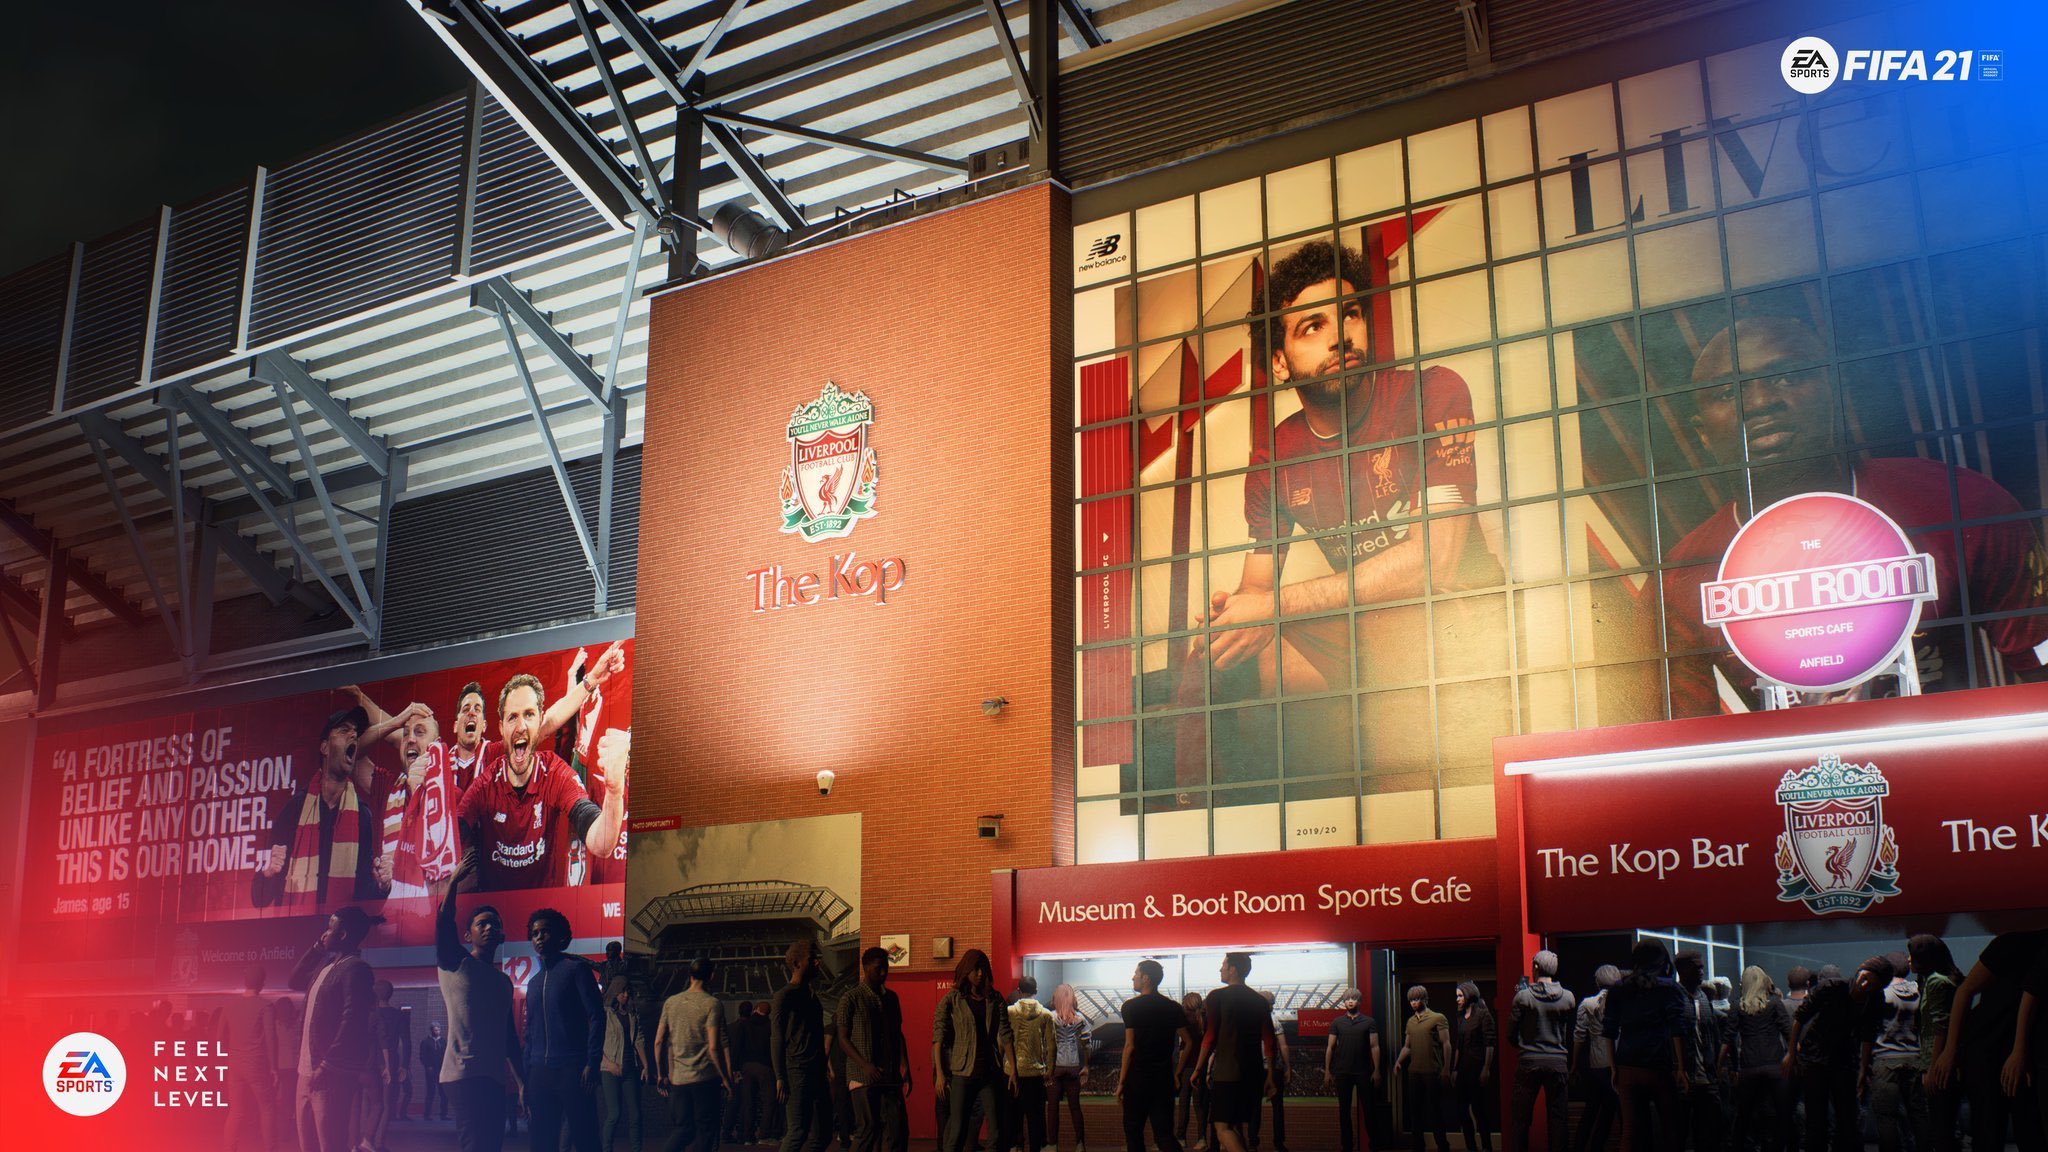 Outside Liverpool's Anfield stadium in FIFA 21